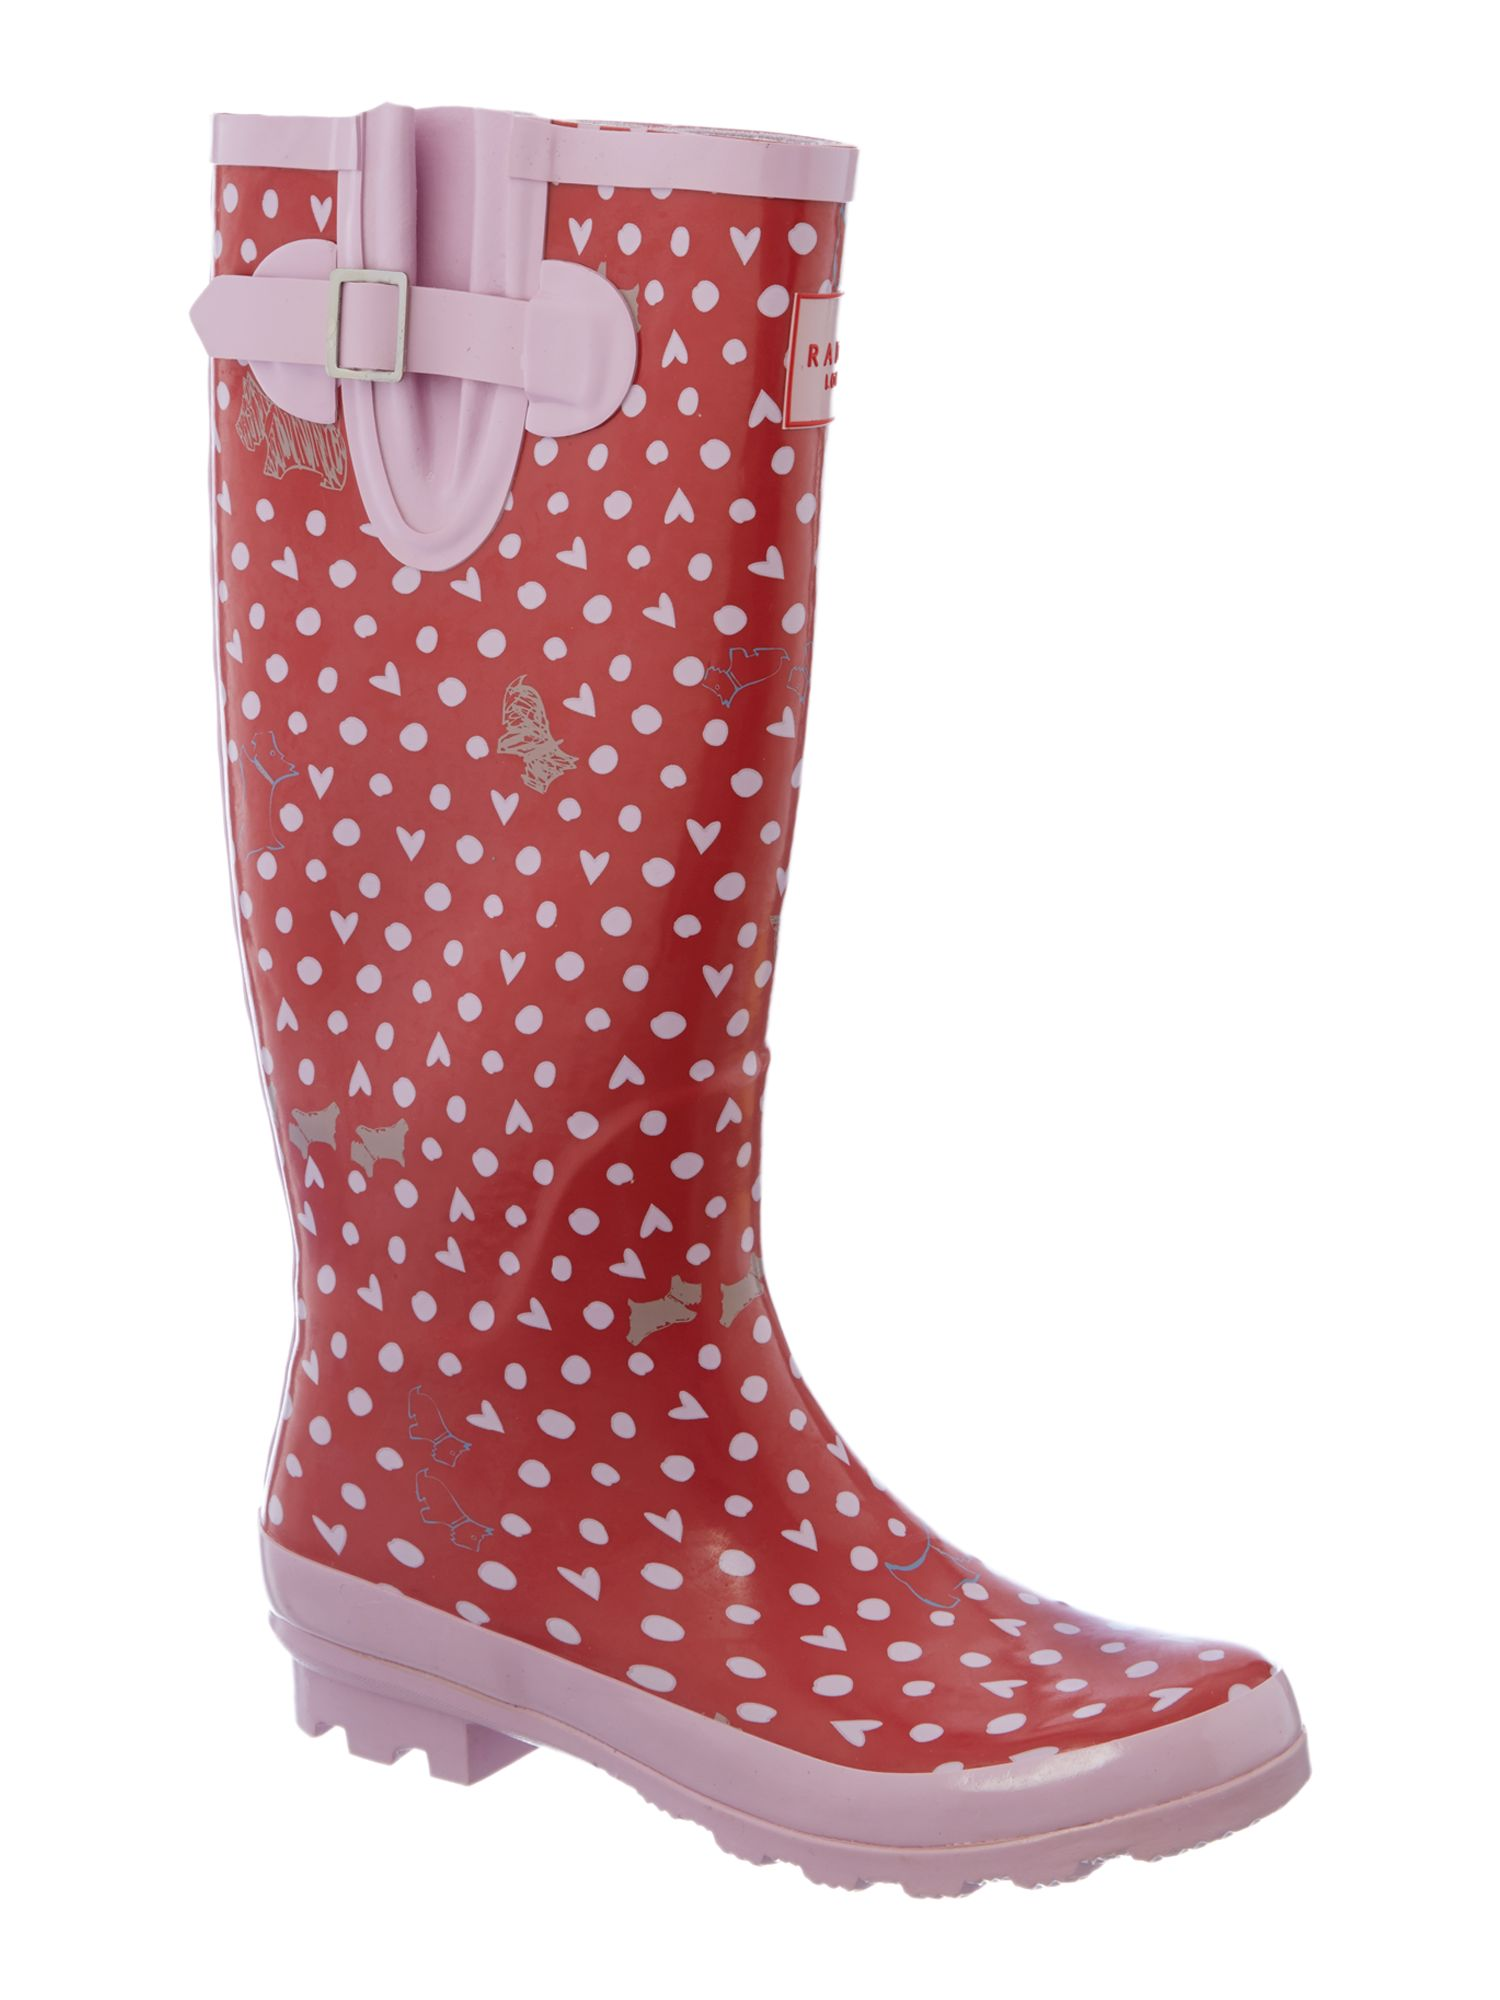 Hibbert dog tall wellington boot